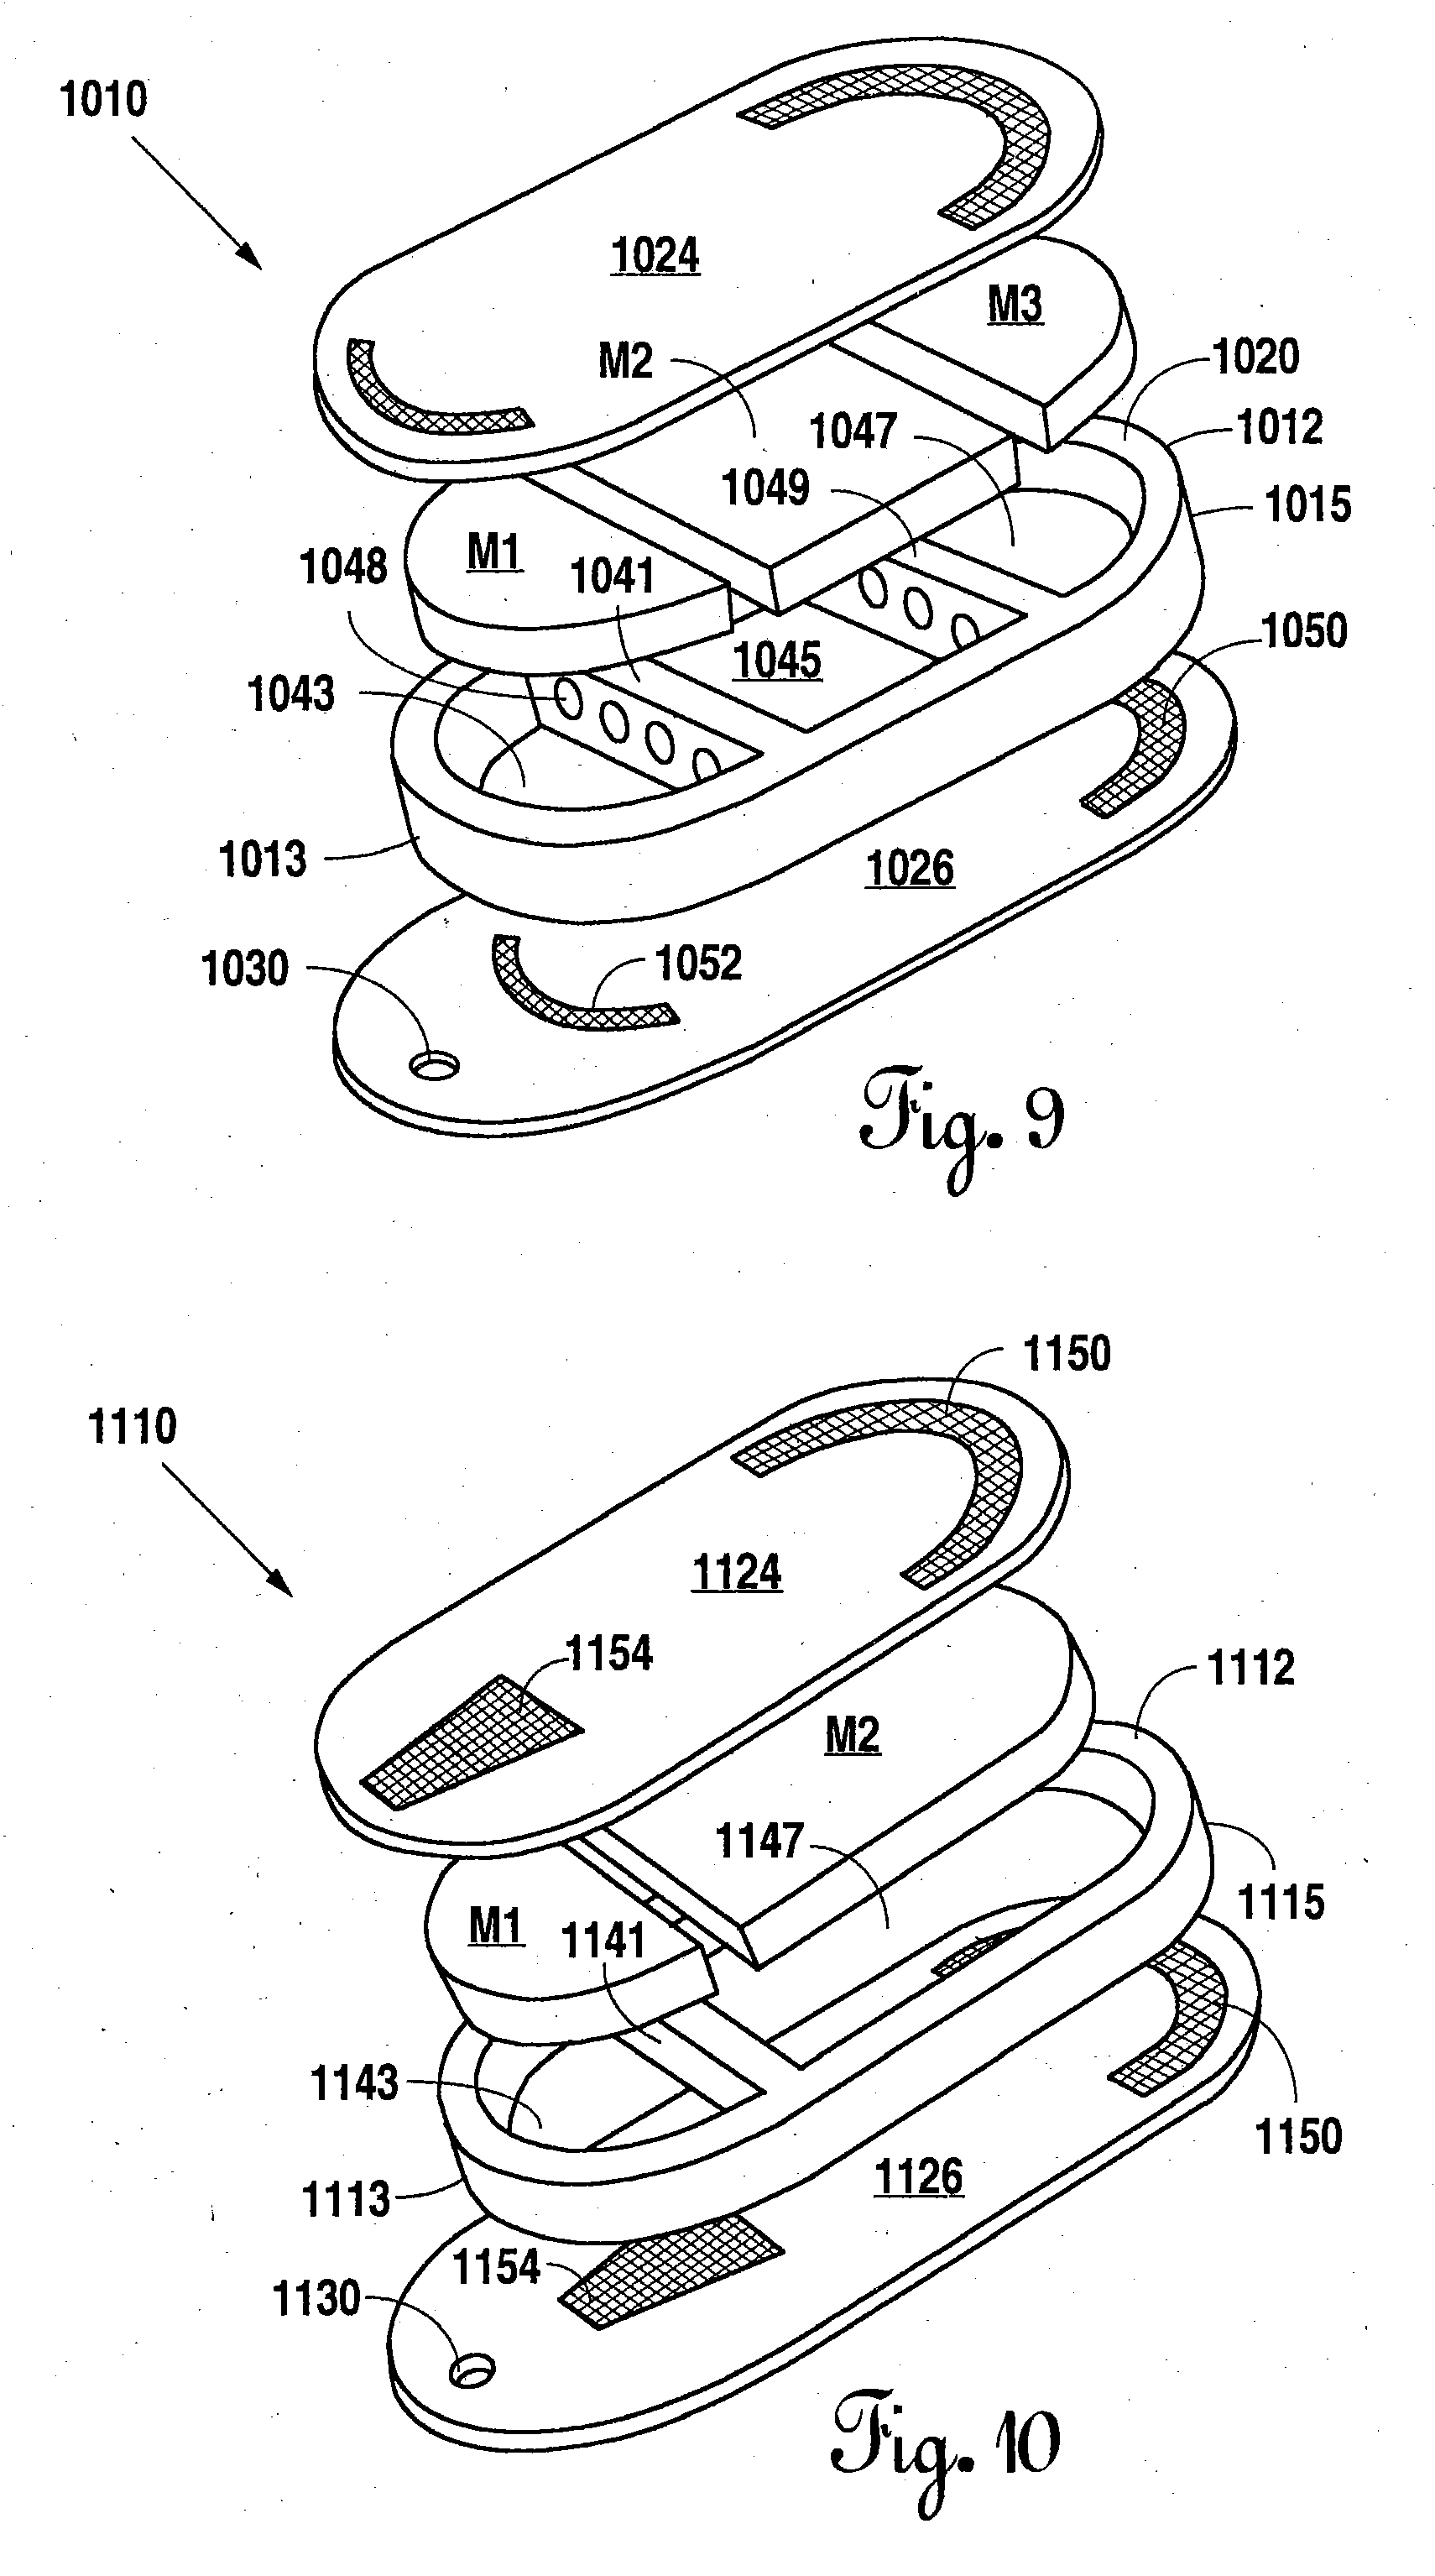 NDS PATENT PROTECTED YOR NUTRITION DELIVERY SYSTEM Trademark Information